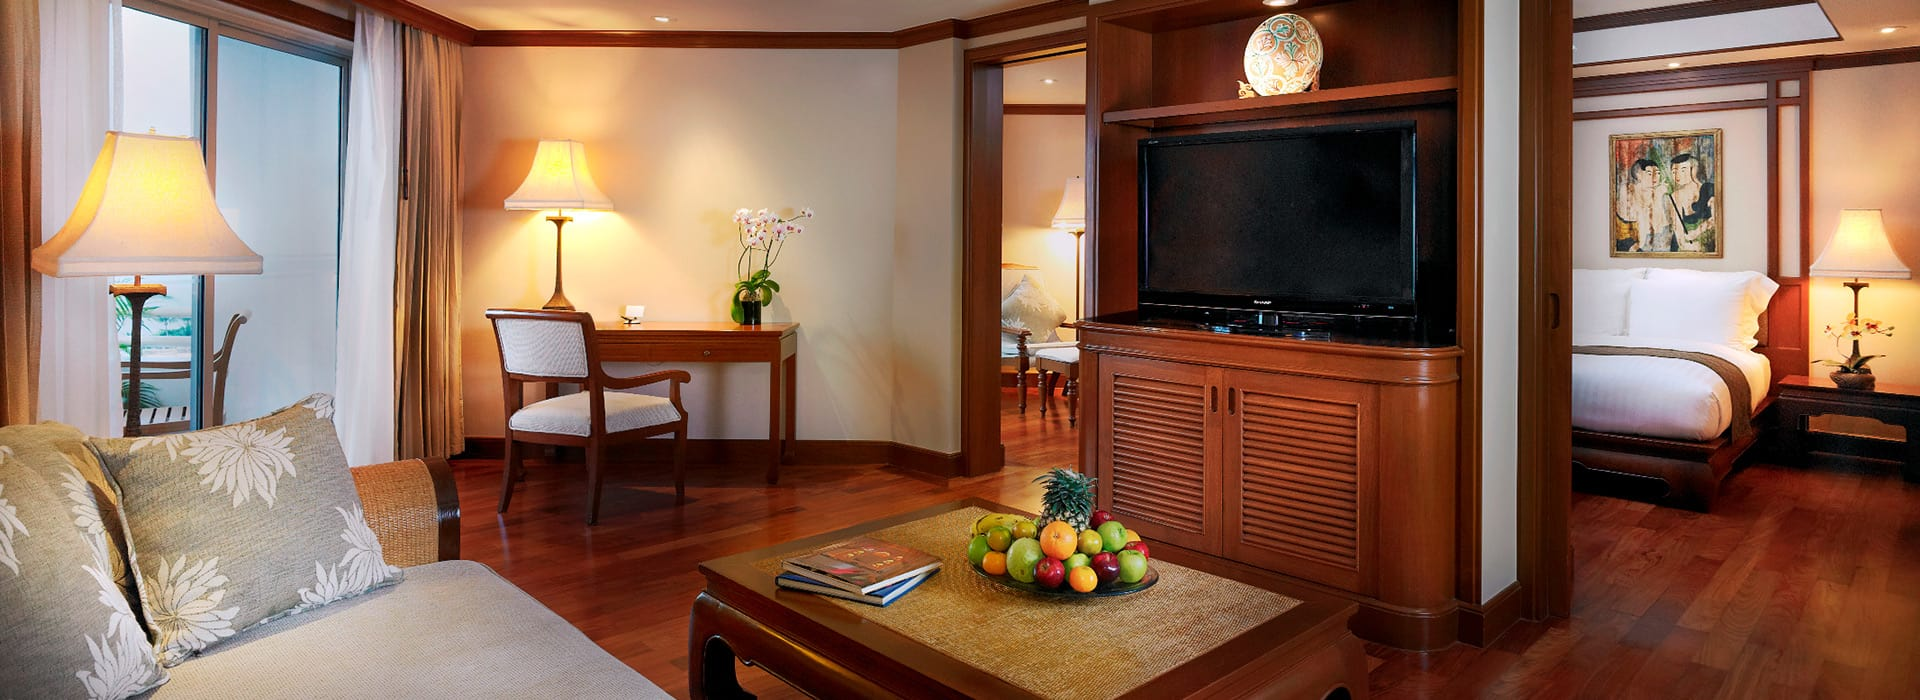 AVANI Pattaya Resort & Spa - AVANI One Bedroom Suite - Living Room